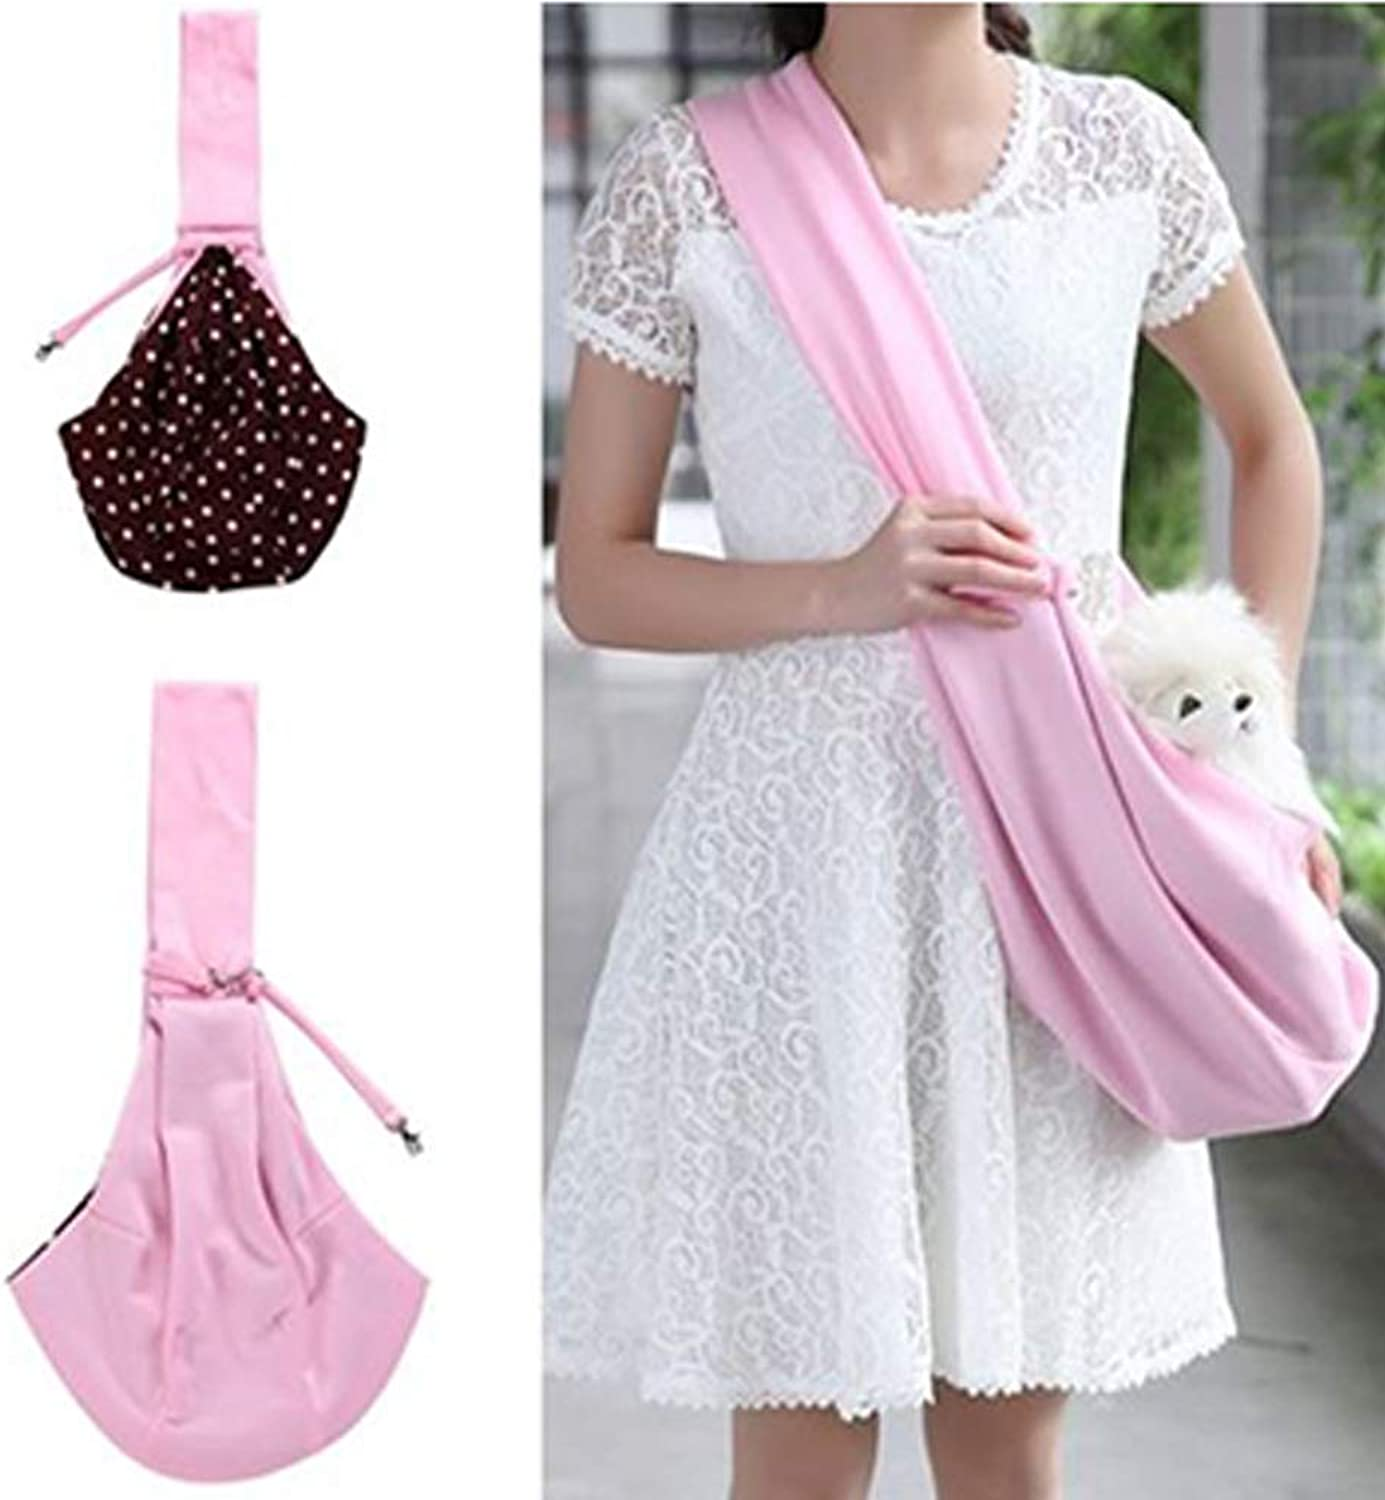 HWX Reversible Pet Sling Carrier Handsfree Sling Pet Dog Cat Carrier Bag Soft Comfortable Puppy Kitty Rabbit Doublesided Pouch Shoulder Carry Tote Handbag,Pink,M